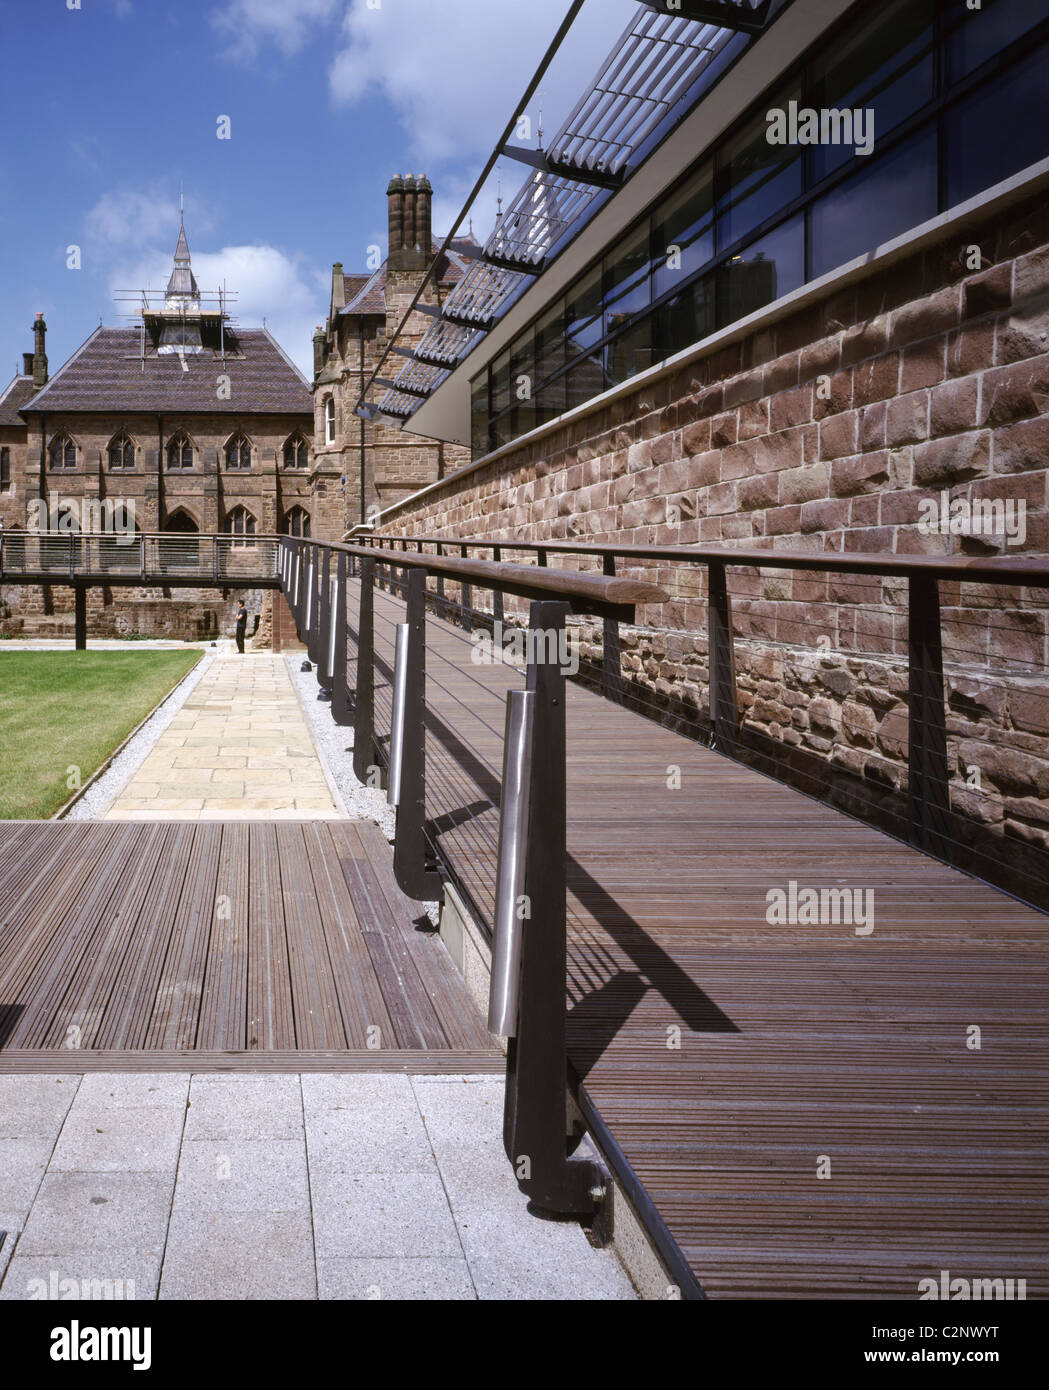 Visitor Interpretation Centre, Coventry. Ramp towards priory church at the south end. - Stock Image